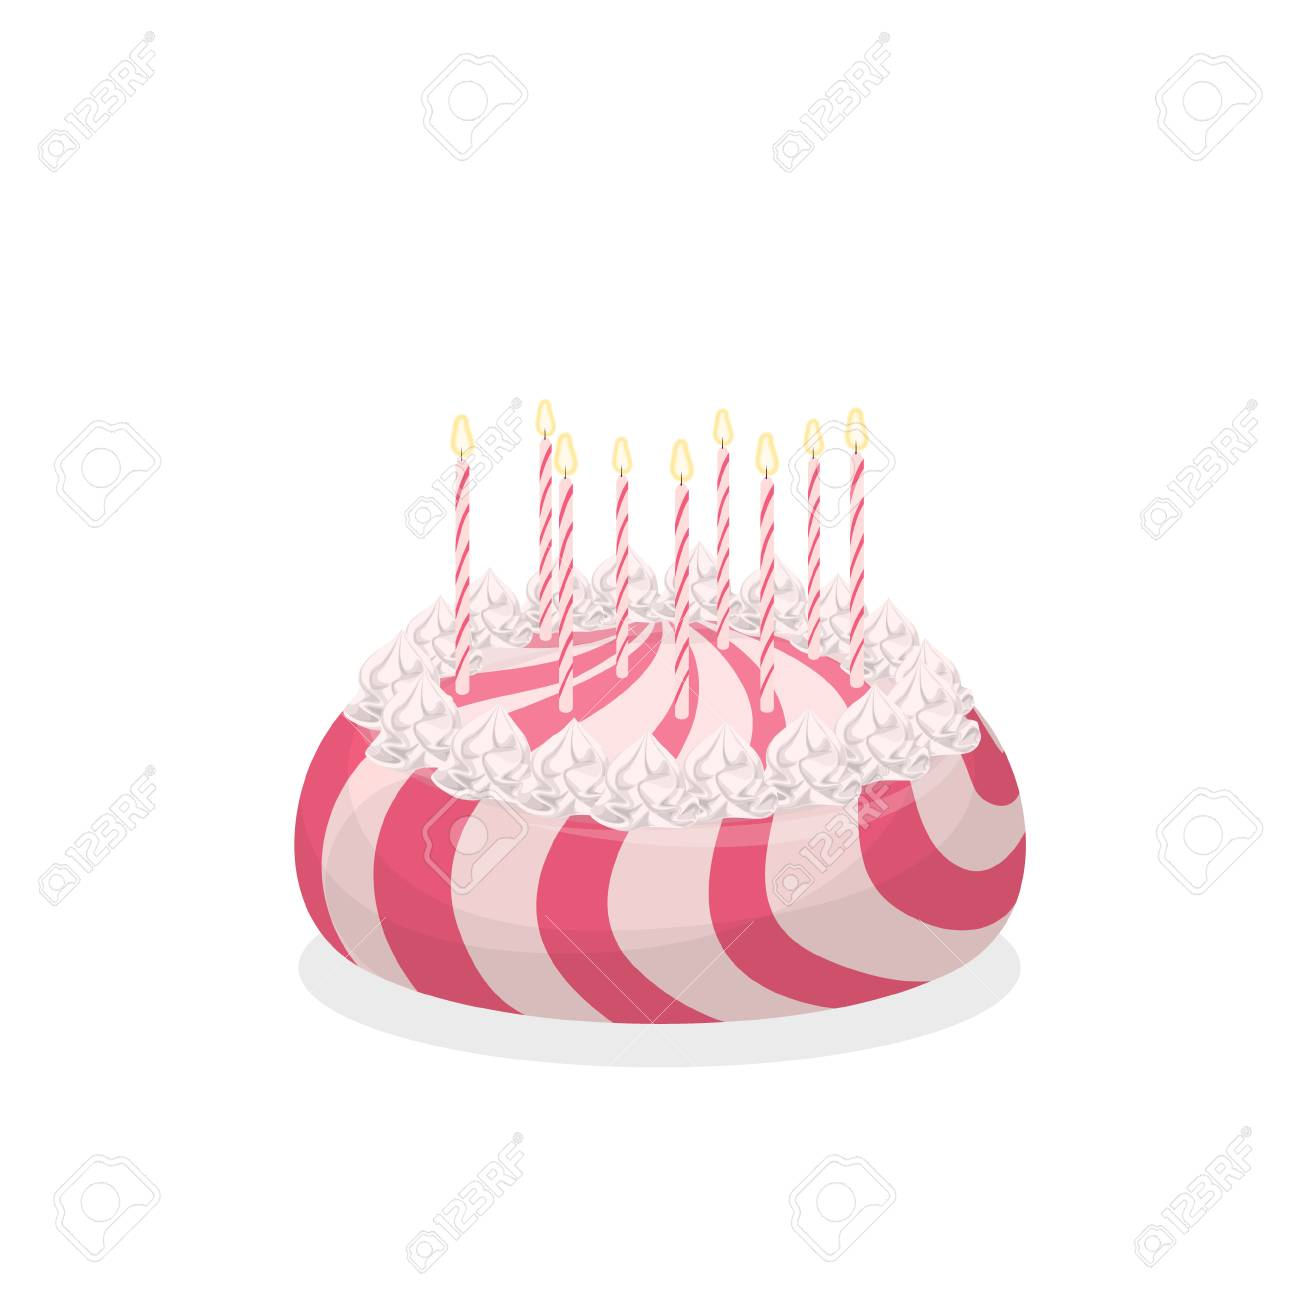 Isolated Birthday Cake On White Background Big Pink And With Candles Stock